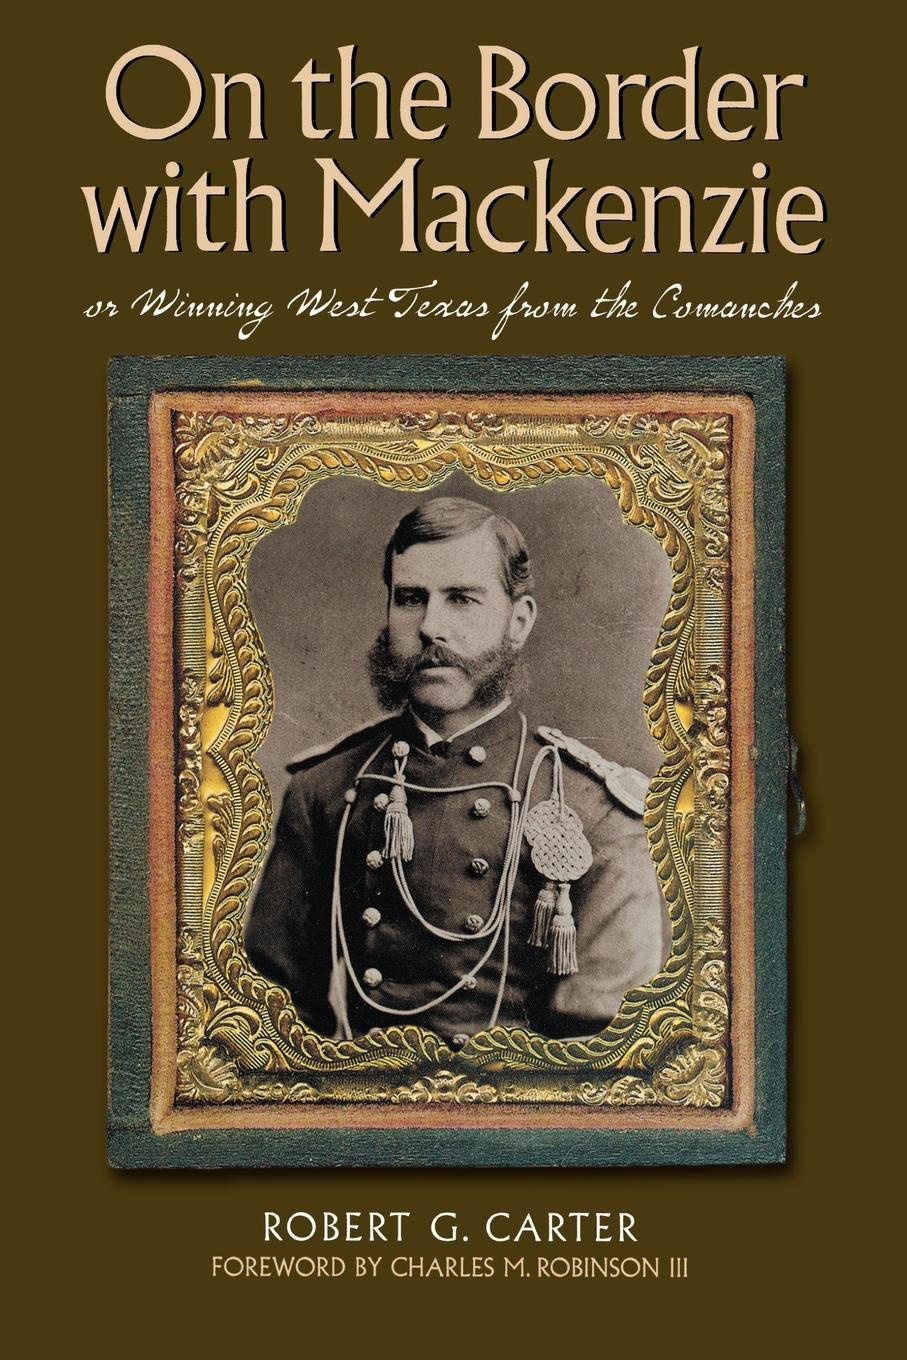 Фото - Robert G. Carter On the Border with MacKenzie; Or Winning West Texas from the Comanches mackenzie robert shelton america a history